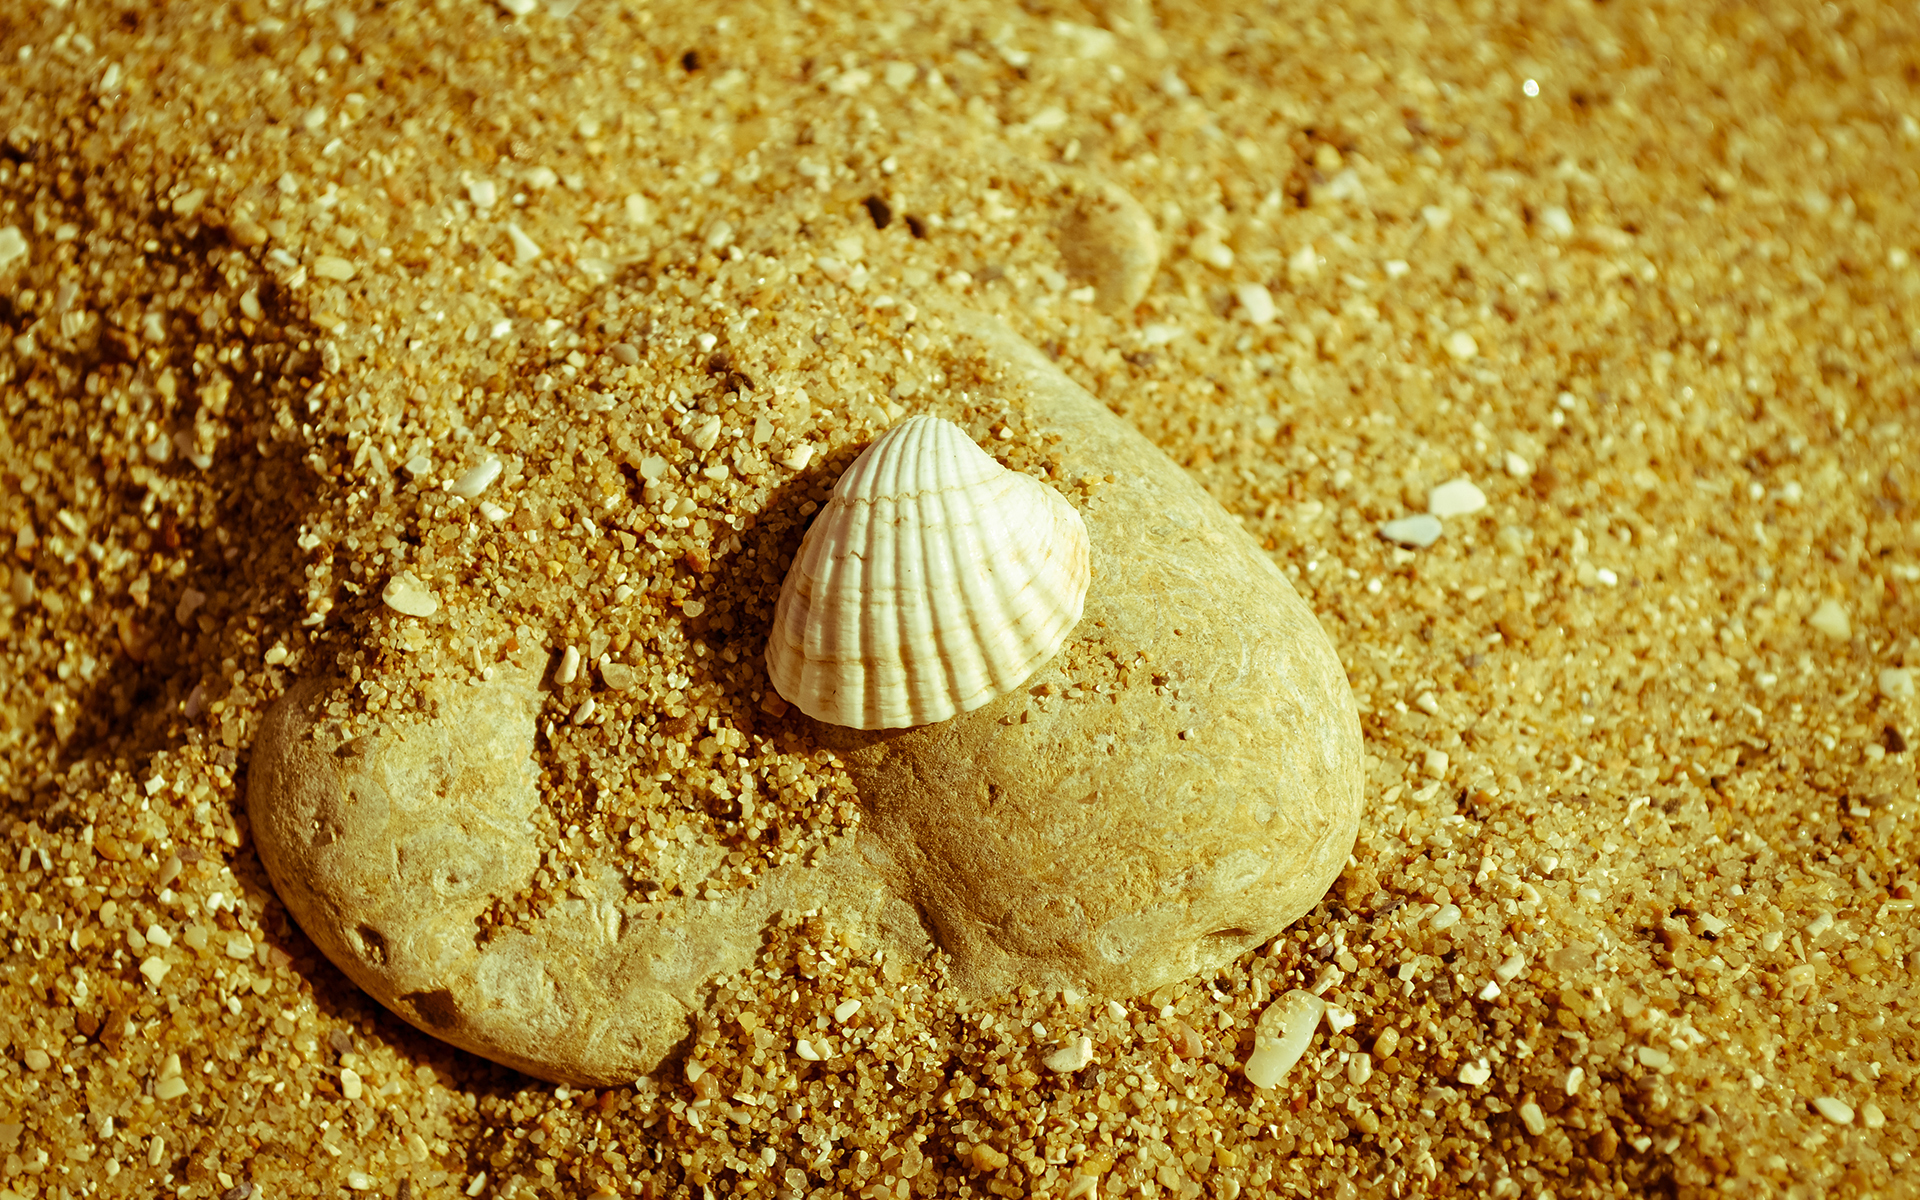 41310 download wallpaper Background, Shells screensavers and pictures for free